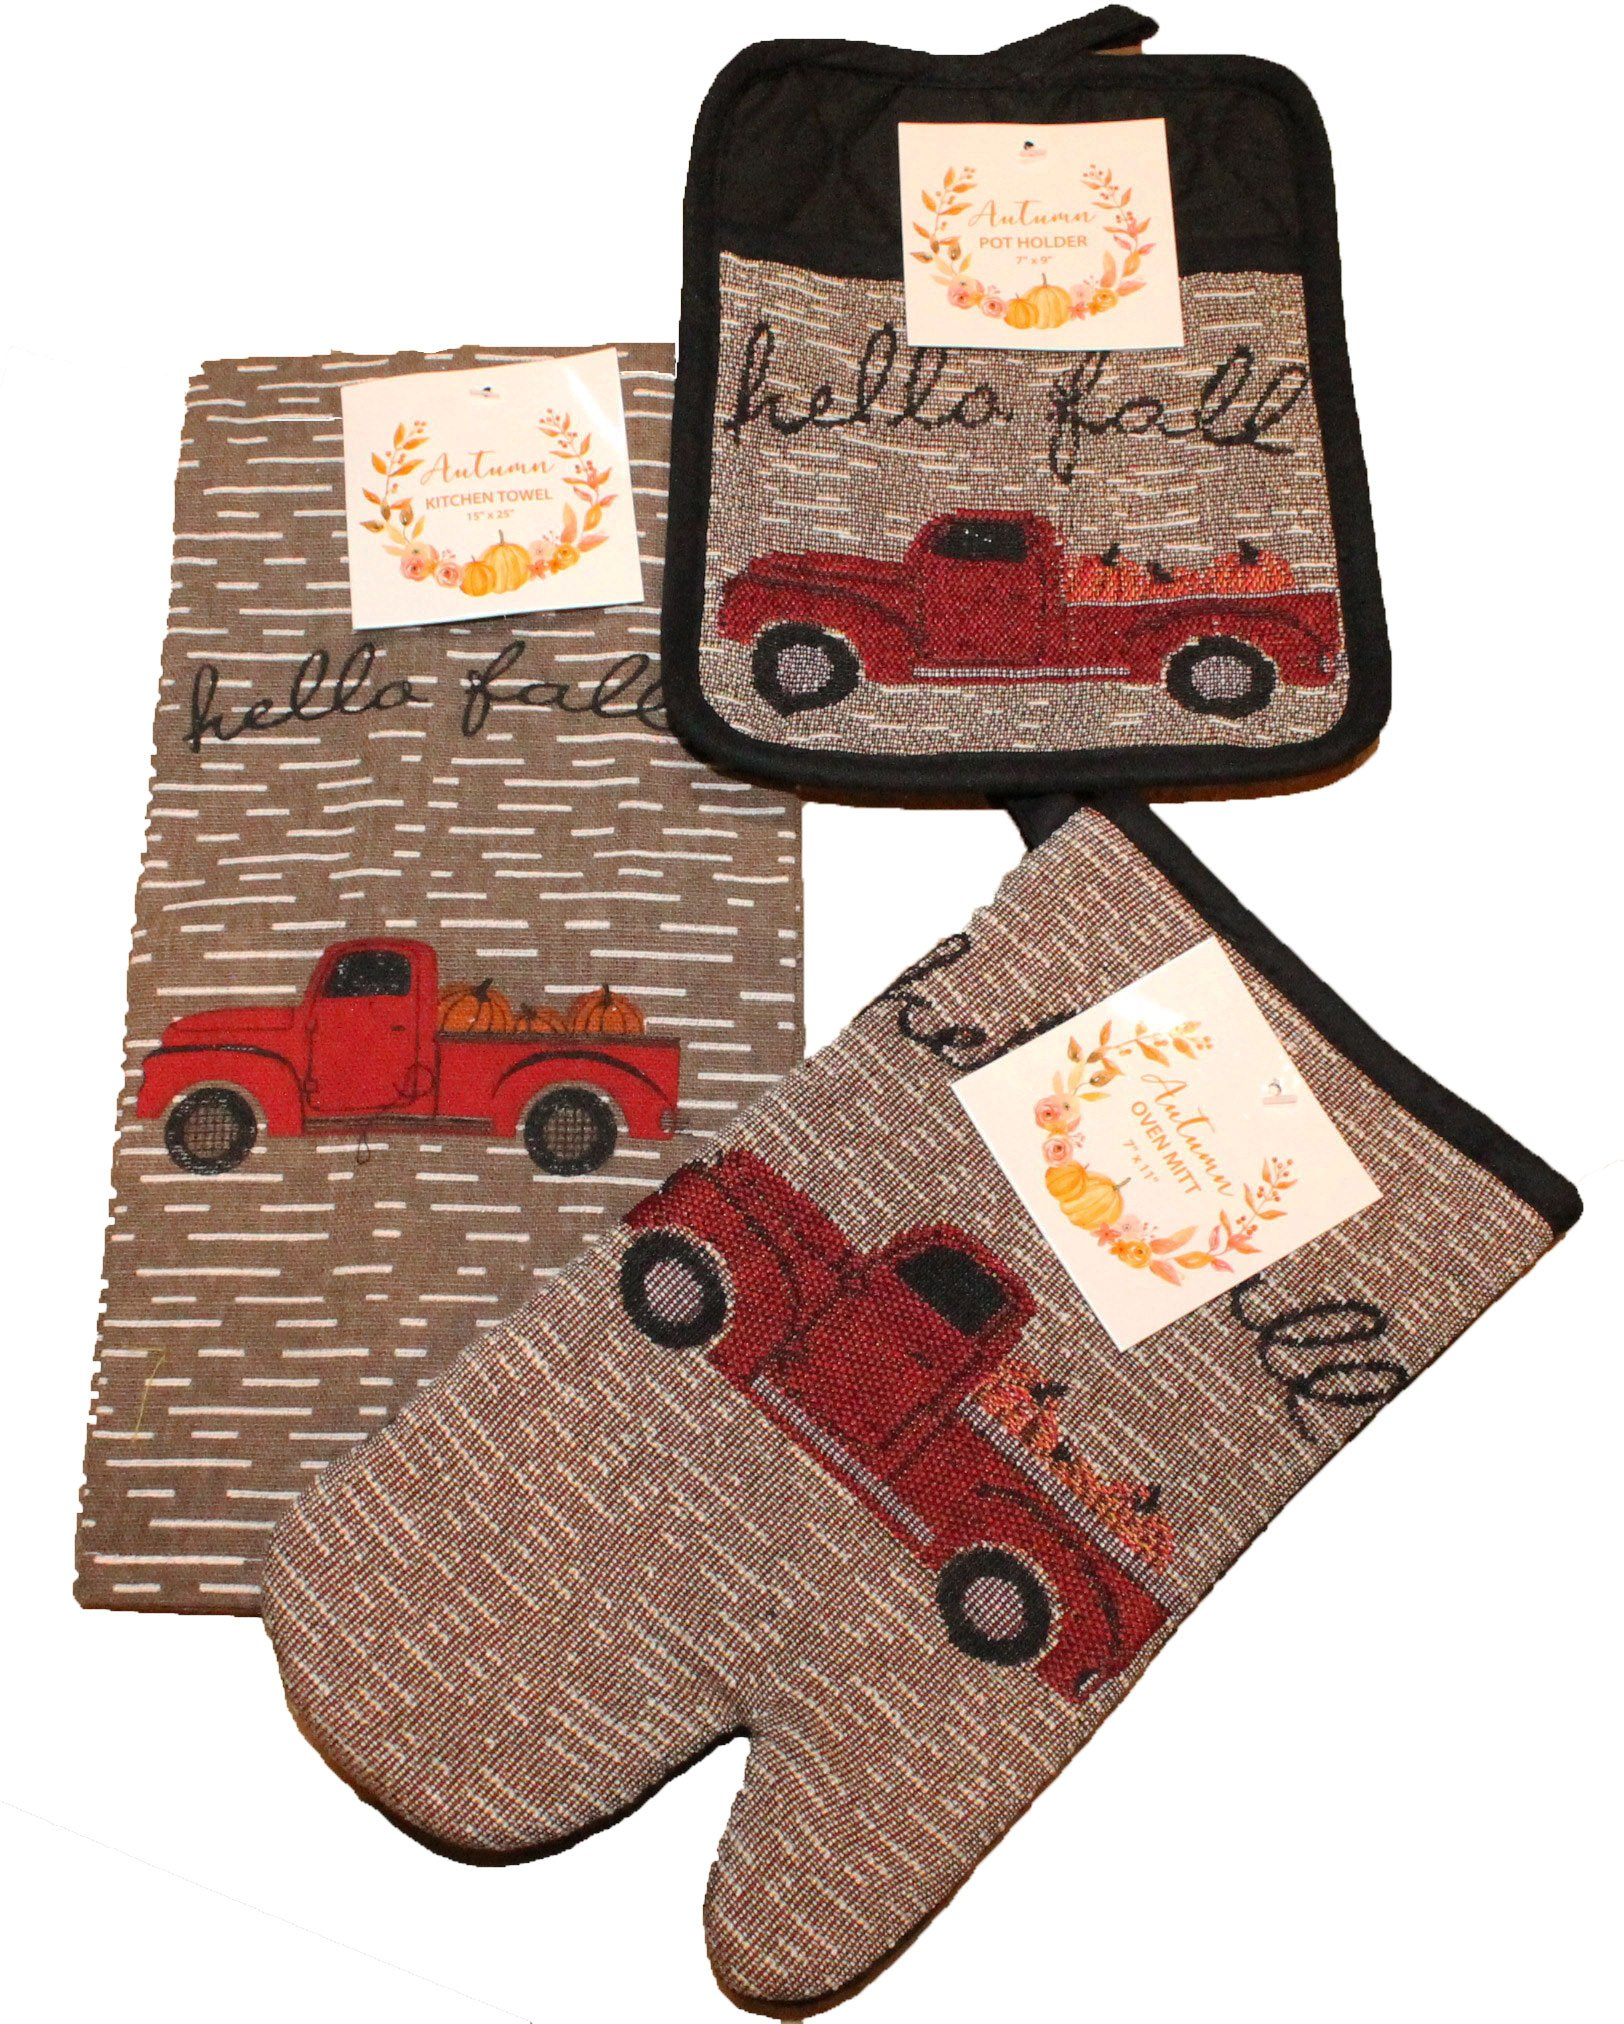 Twisted Anchor Trading Co 3 Pc Vintage Truck Fall Autumn Kitchen Towel Set - Includes Pot Holder, Fall Kitchen Towel, and Oven Mitt